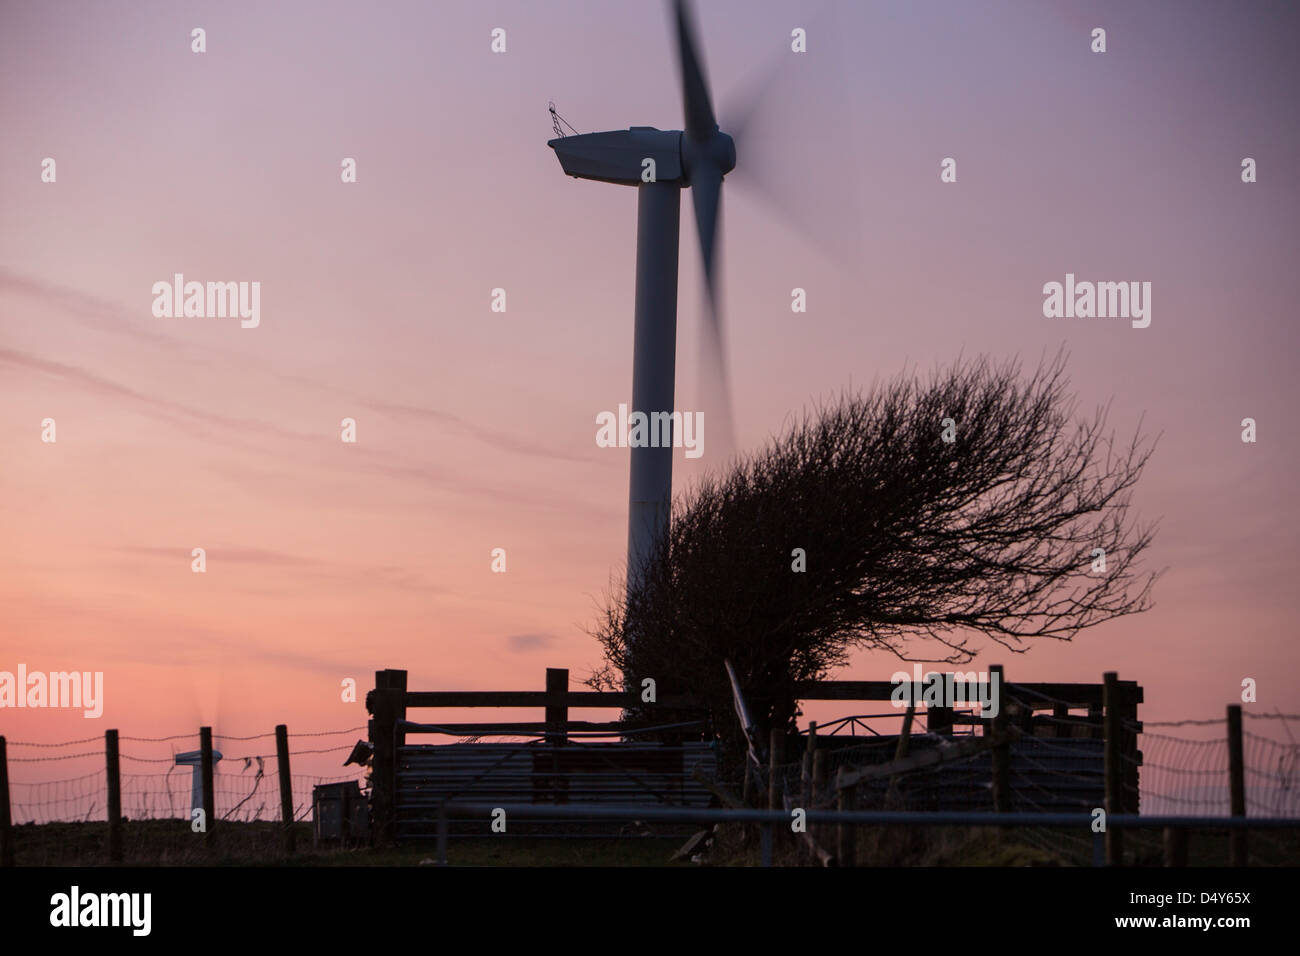 A 2 MW wind turbine producing renewable electricity in the grounds of the Eastman factory on the outskirts of Workington, - Stock Image